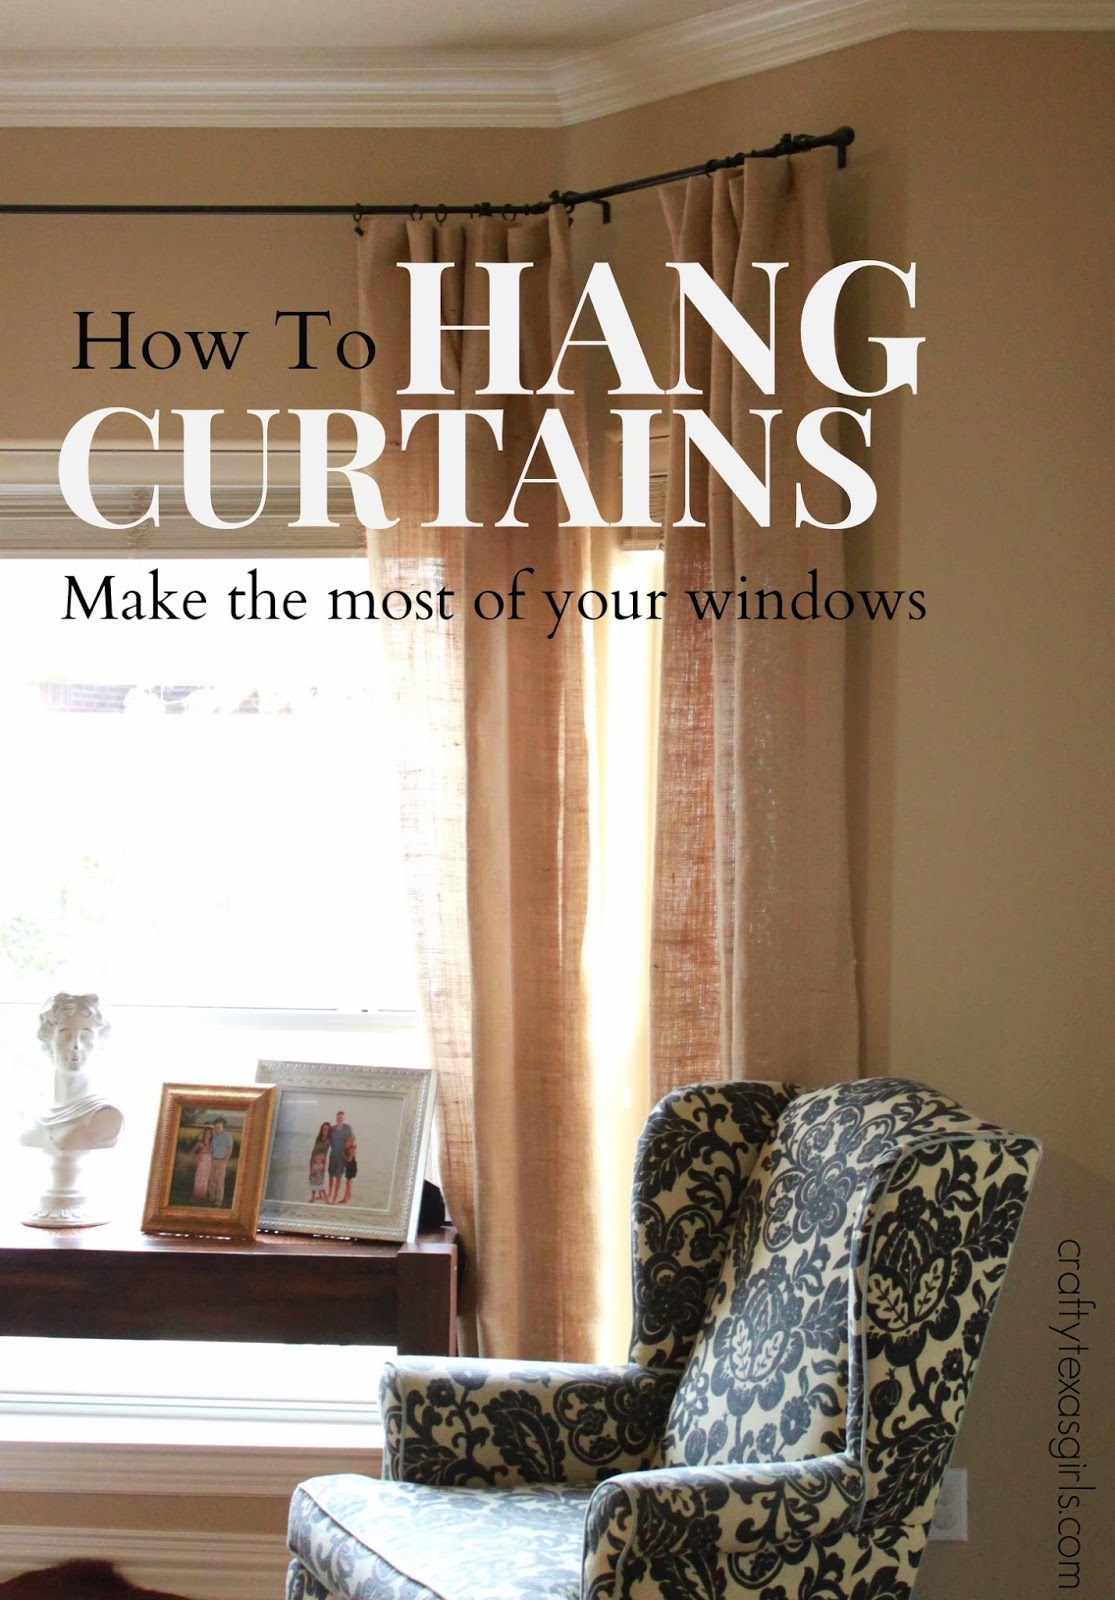 the thing about hanging curtains is you have to hang them high and